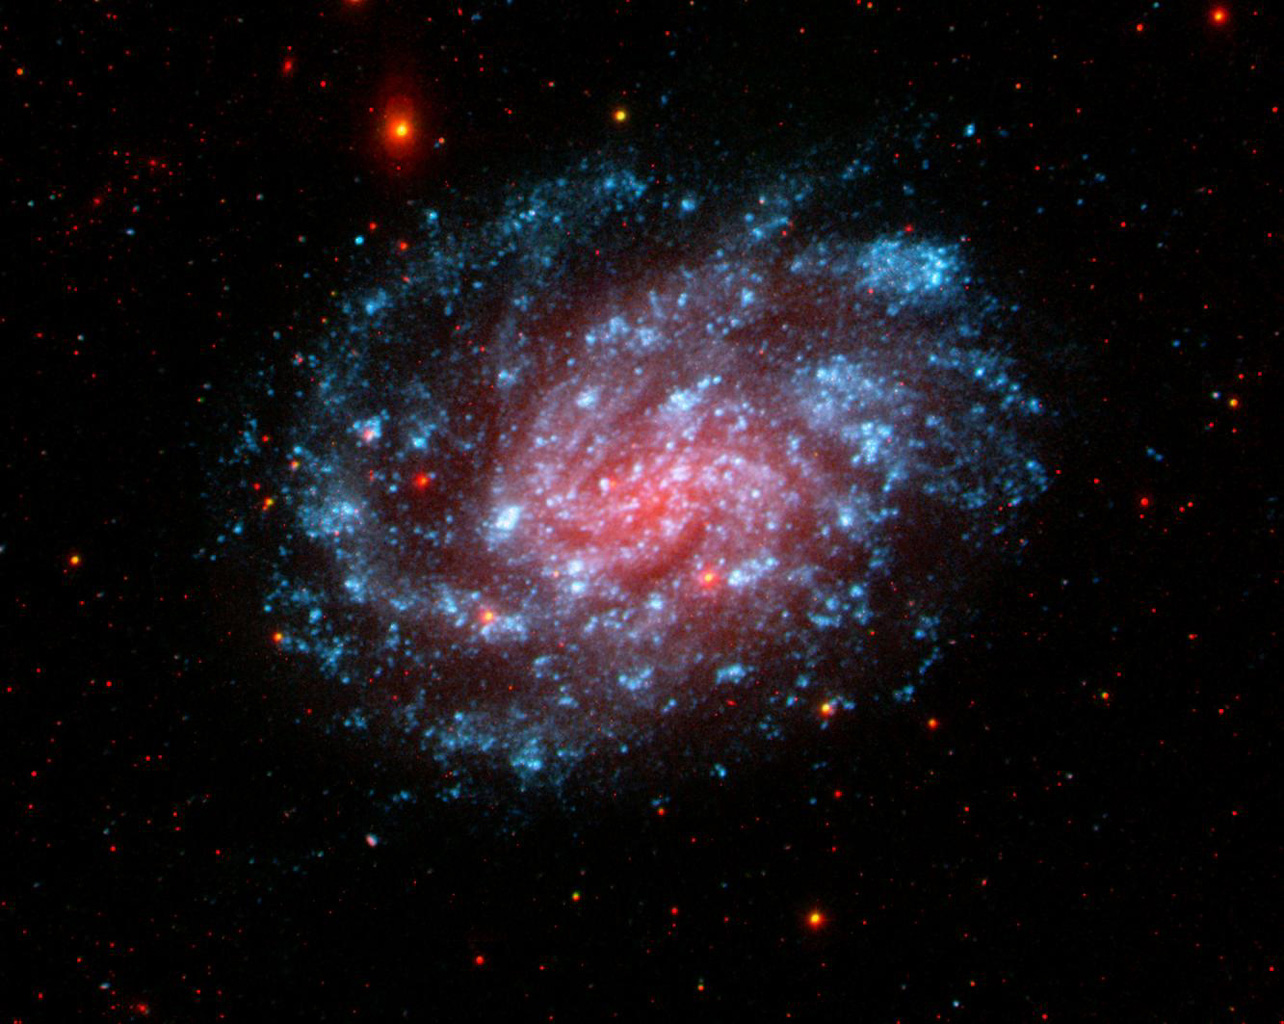 This image from NASA's Galaxy Evolution Explorer shows the galaxy NGC 300, located about seven million light-years away in the constellation Sculptor. It is a classic spiral galaxy with open arms and vigorous star formation throughout.